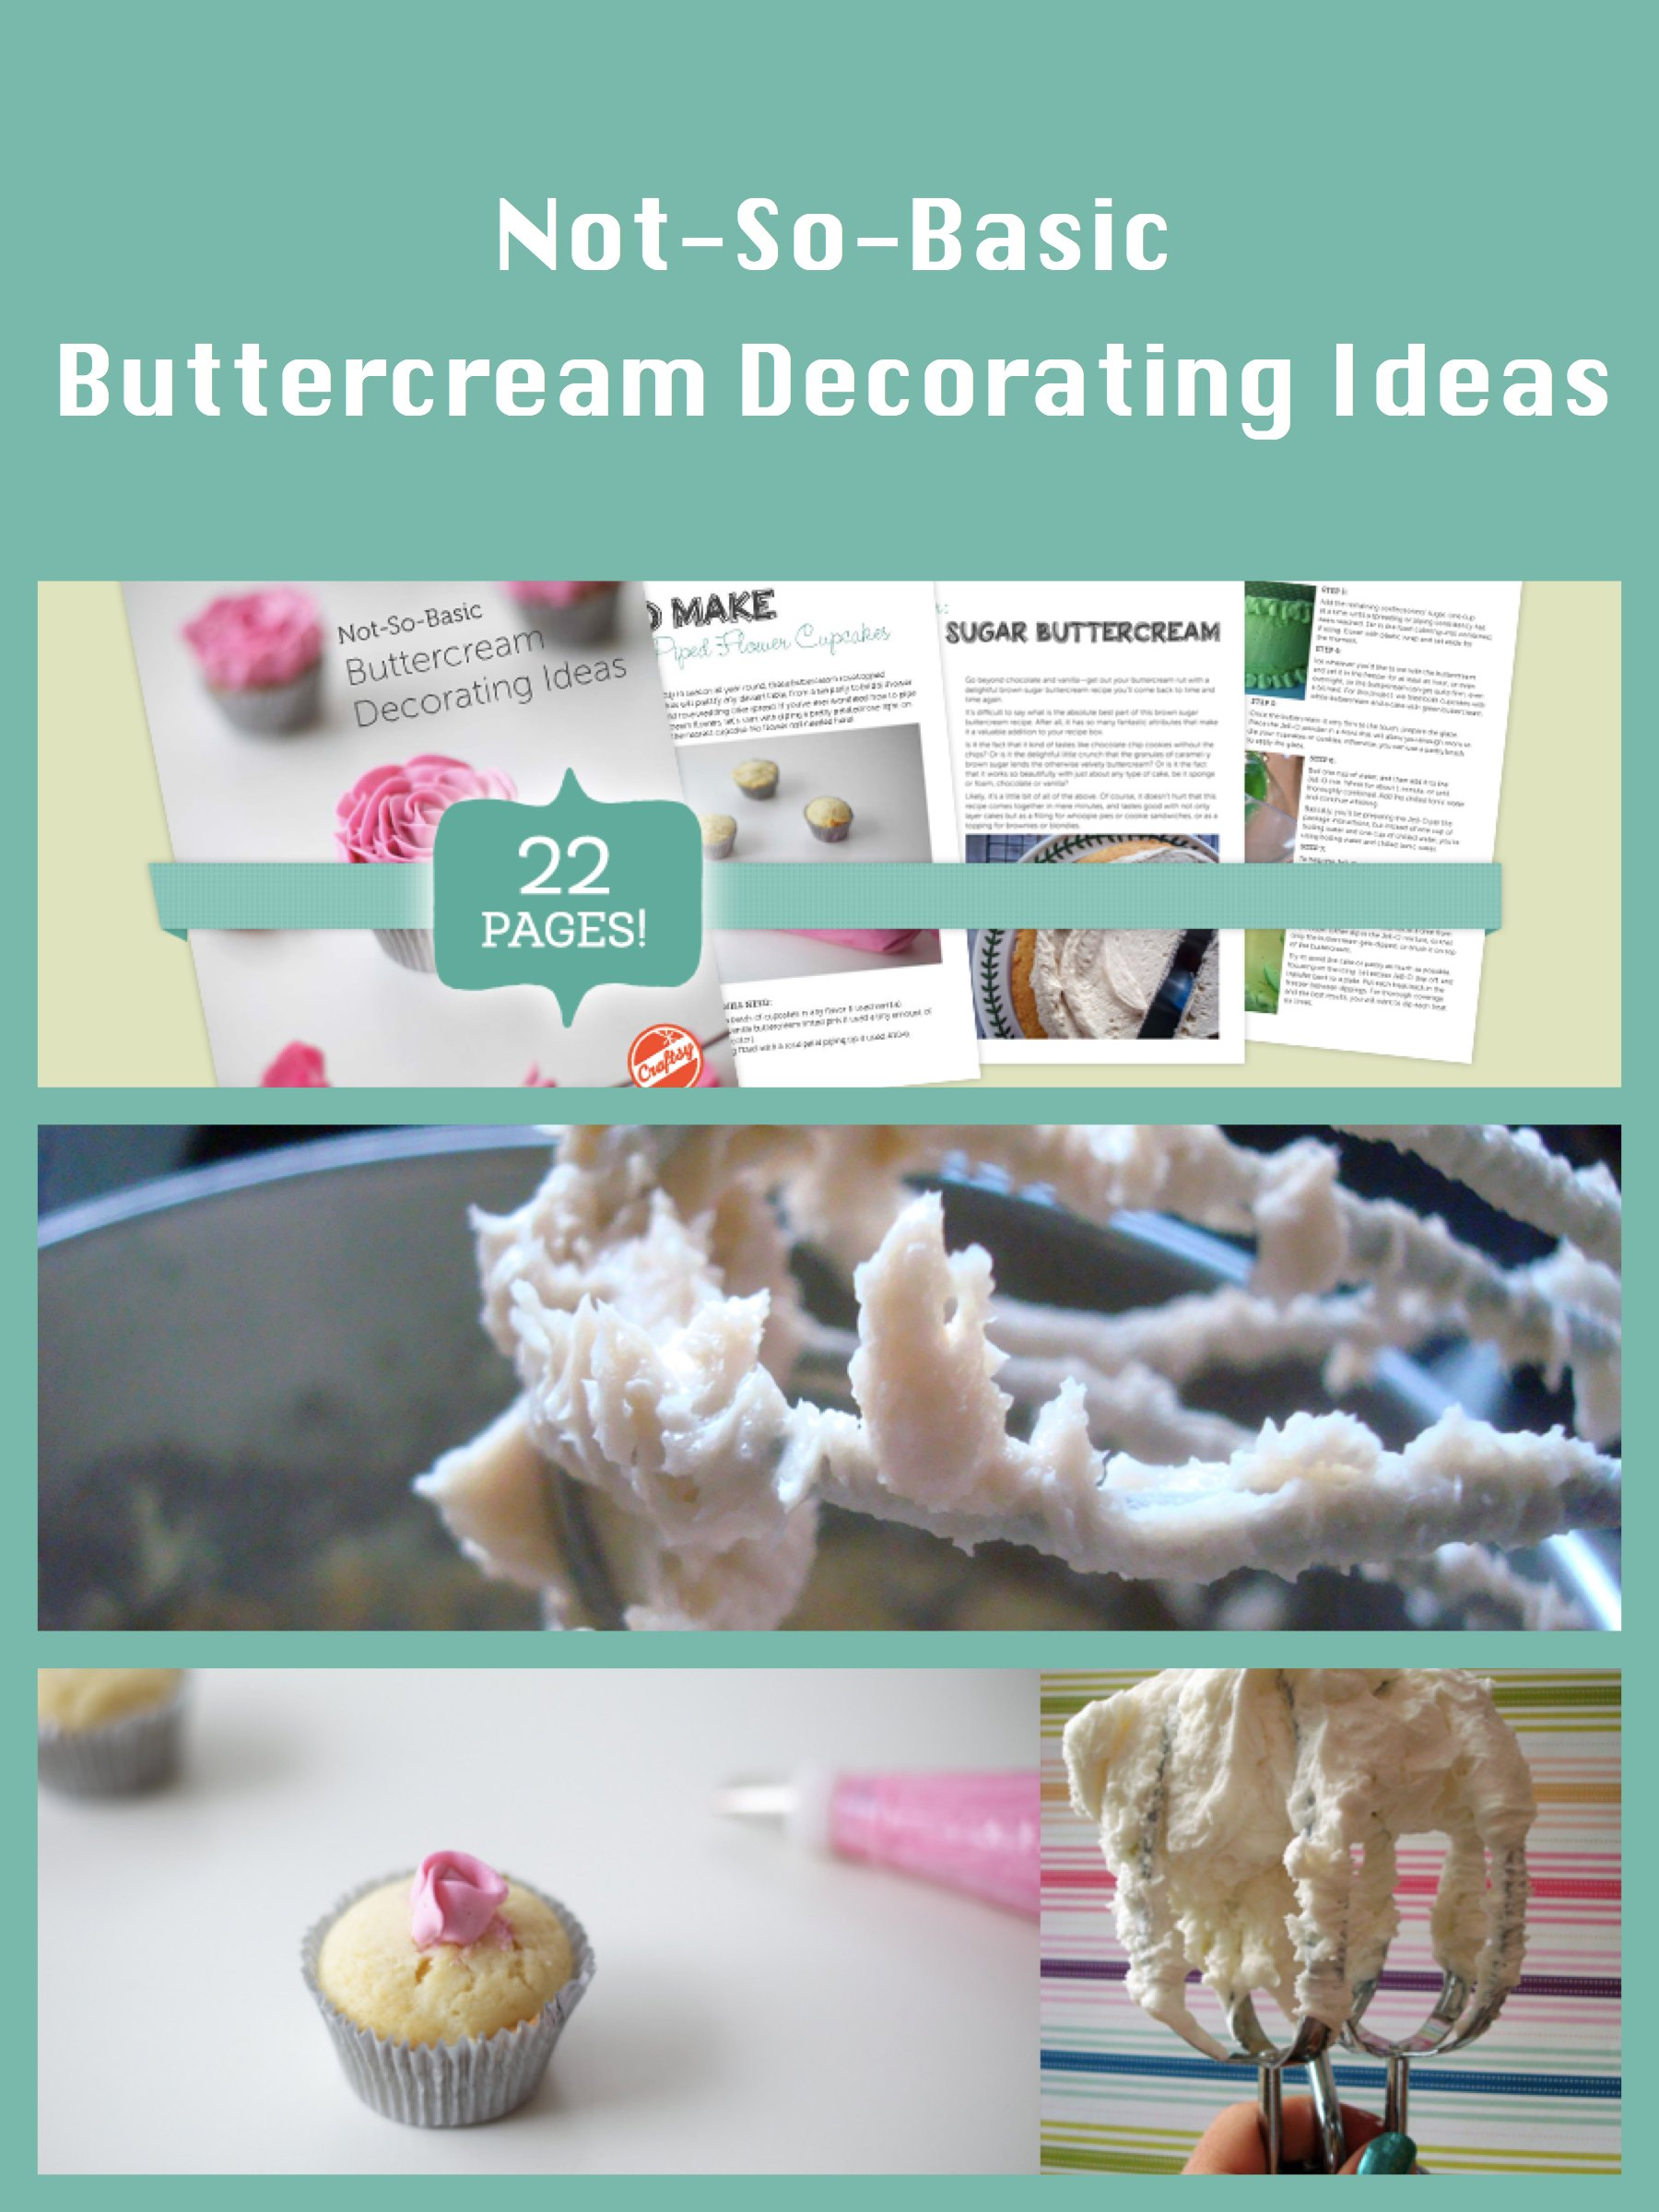 Not so basic buttercream decorating ideas